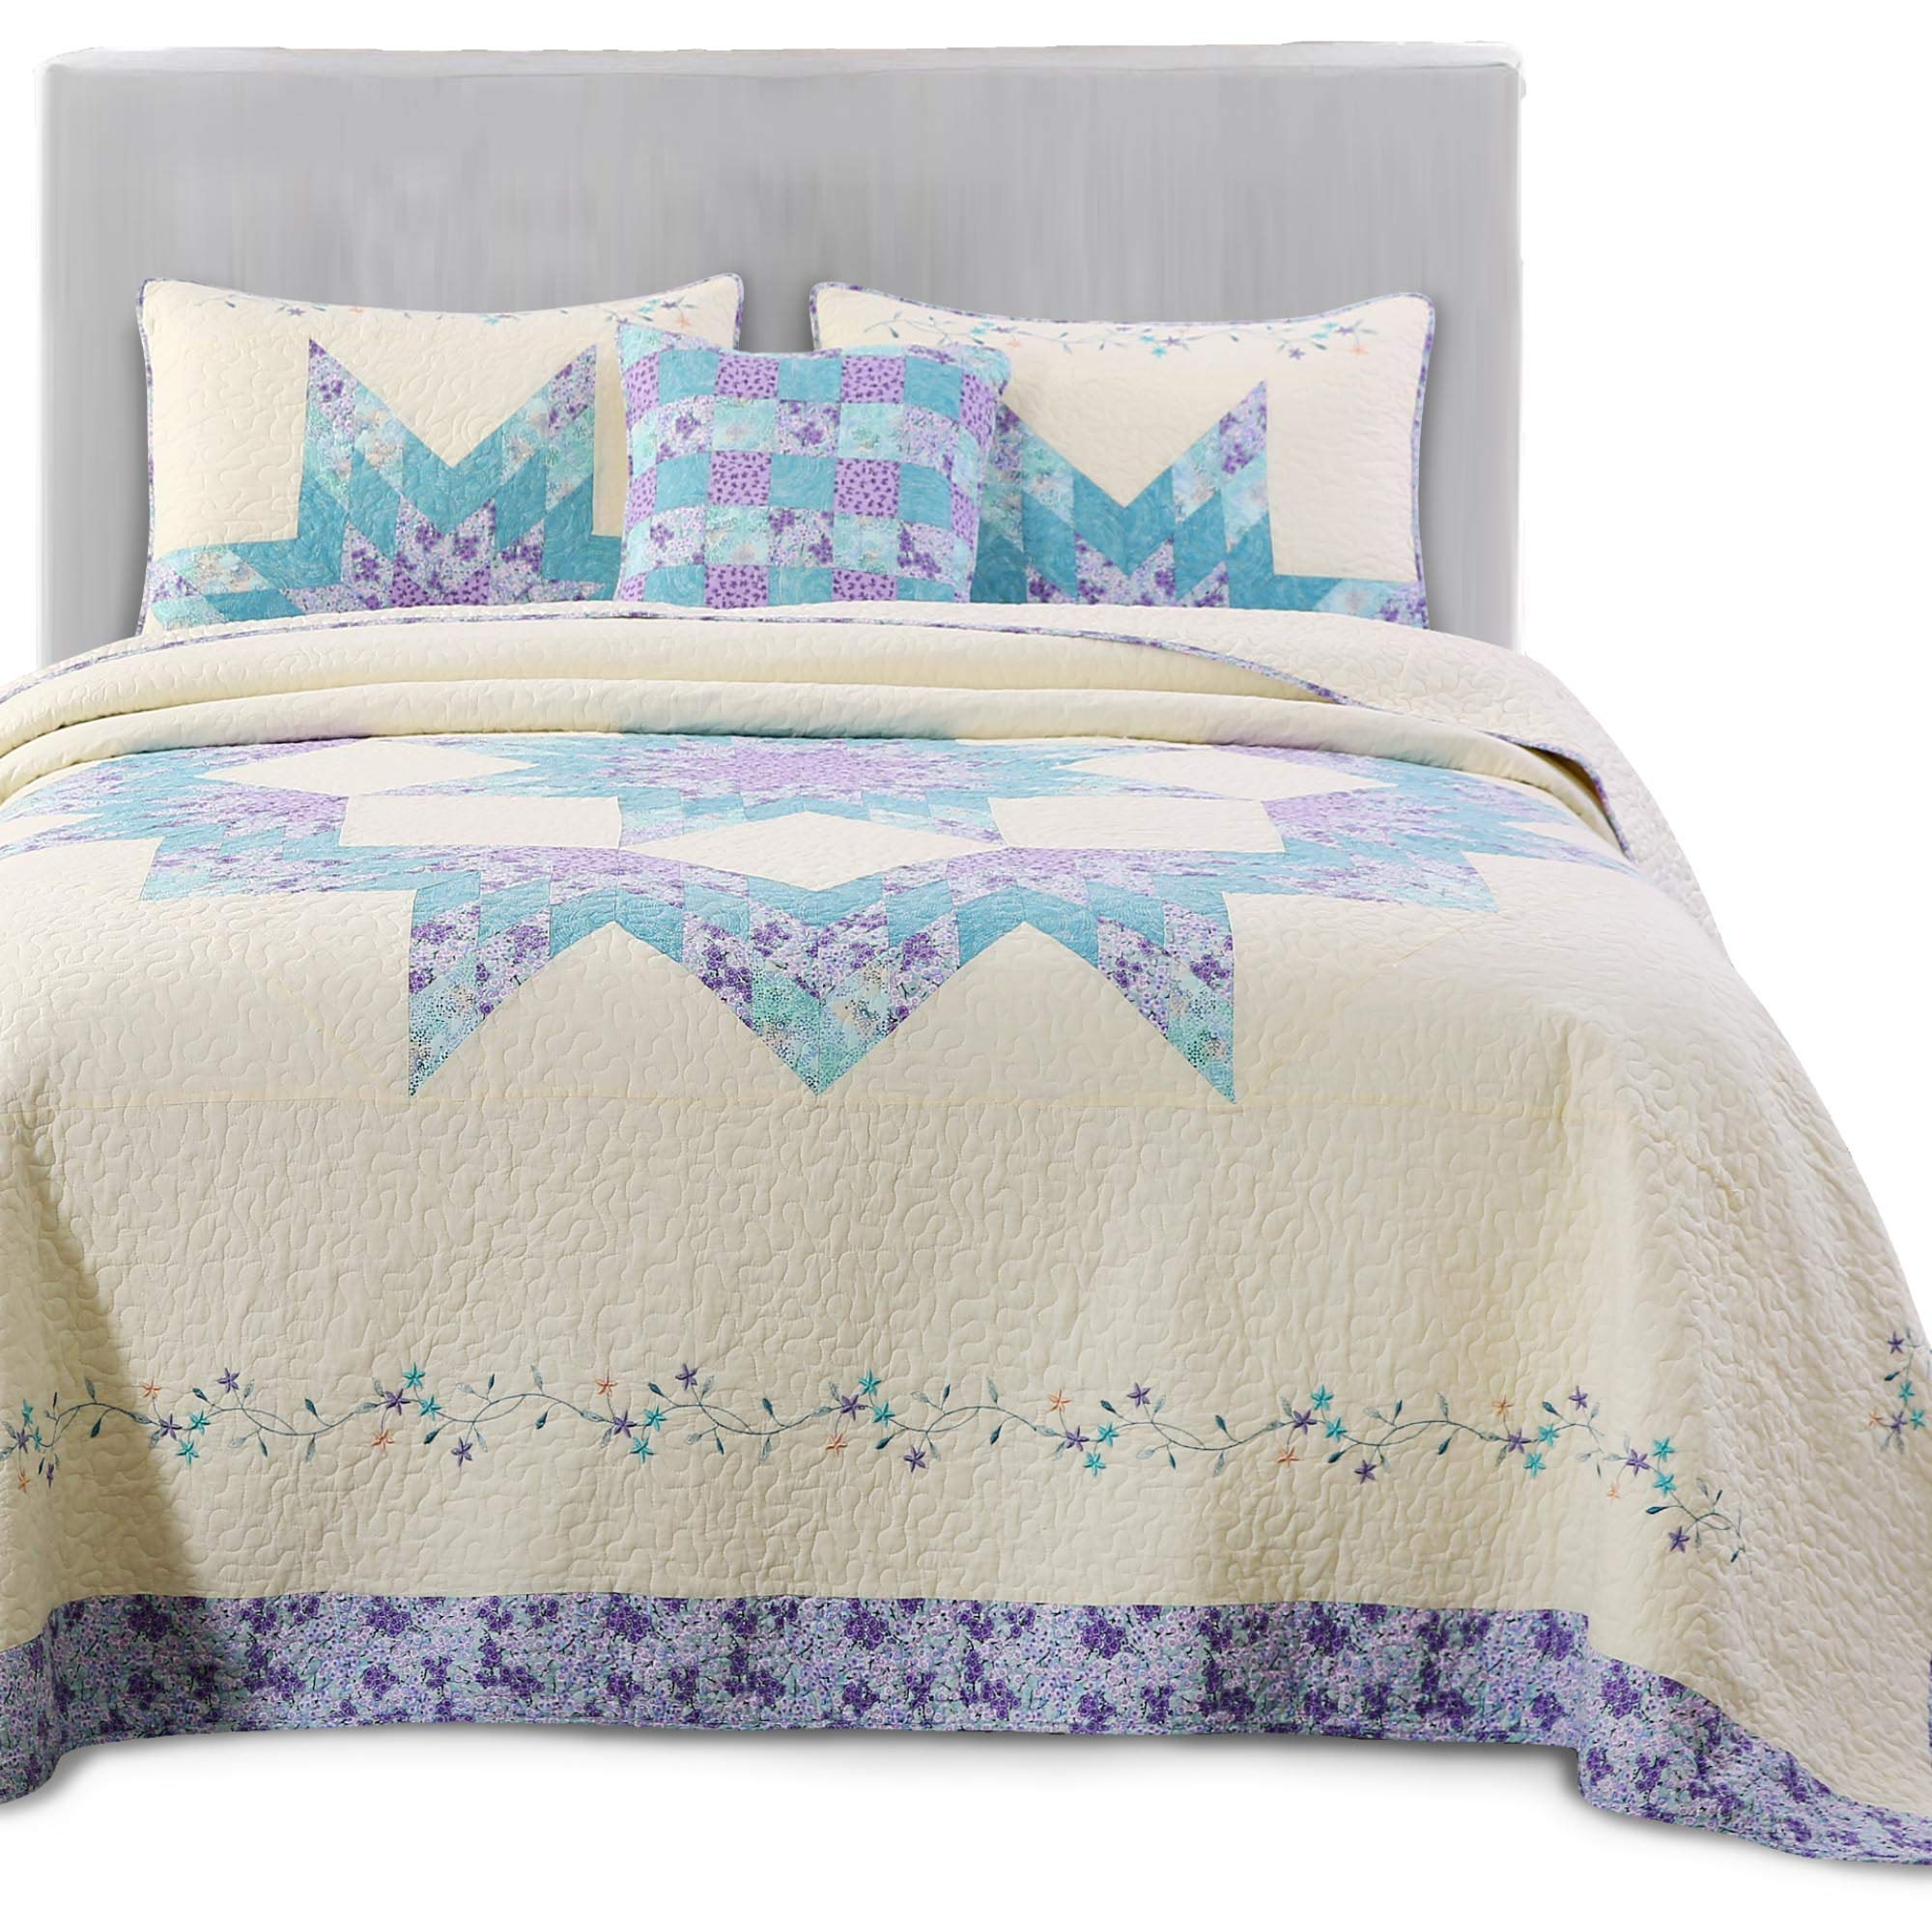 KASENTEX Luxurious Patchwork Bedspread Embroidery Coverlet 100% Cotton Quilt Machine Washable Oversize King